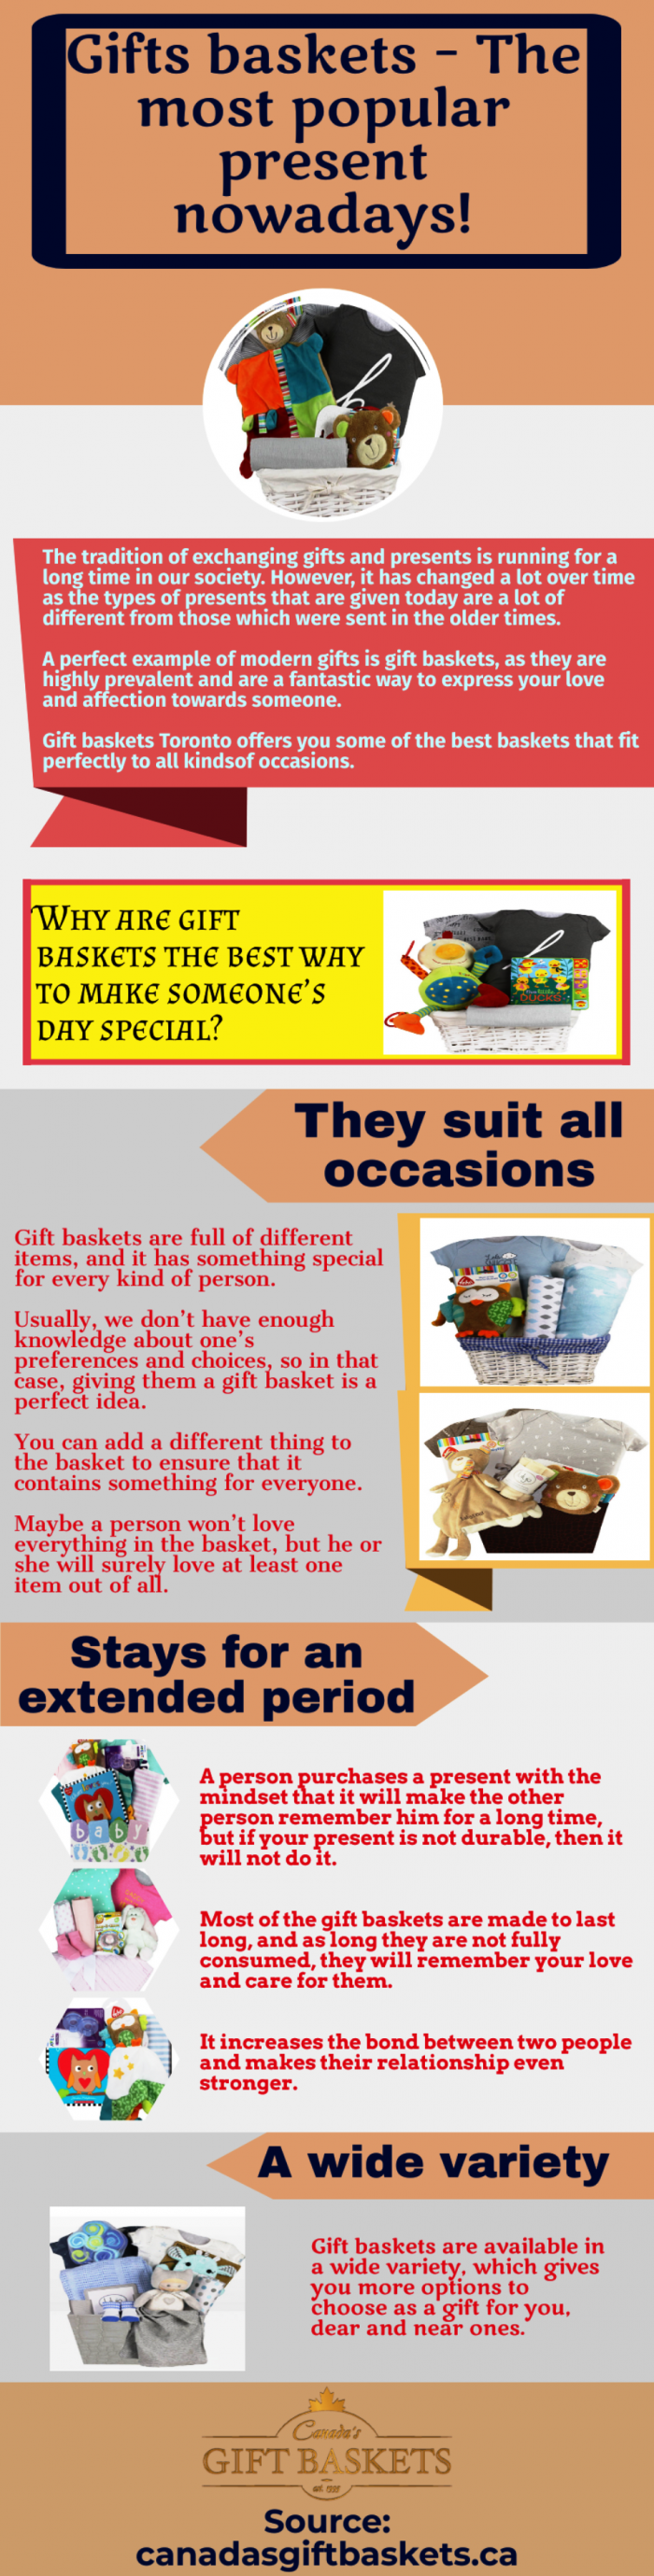 Top Features of gift baskets